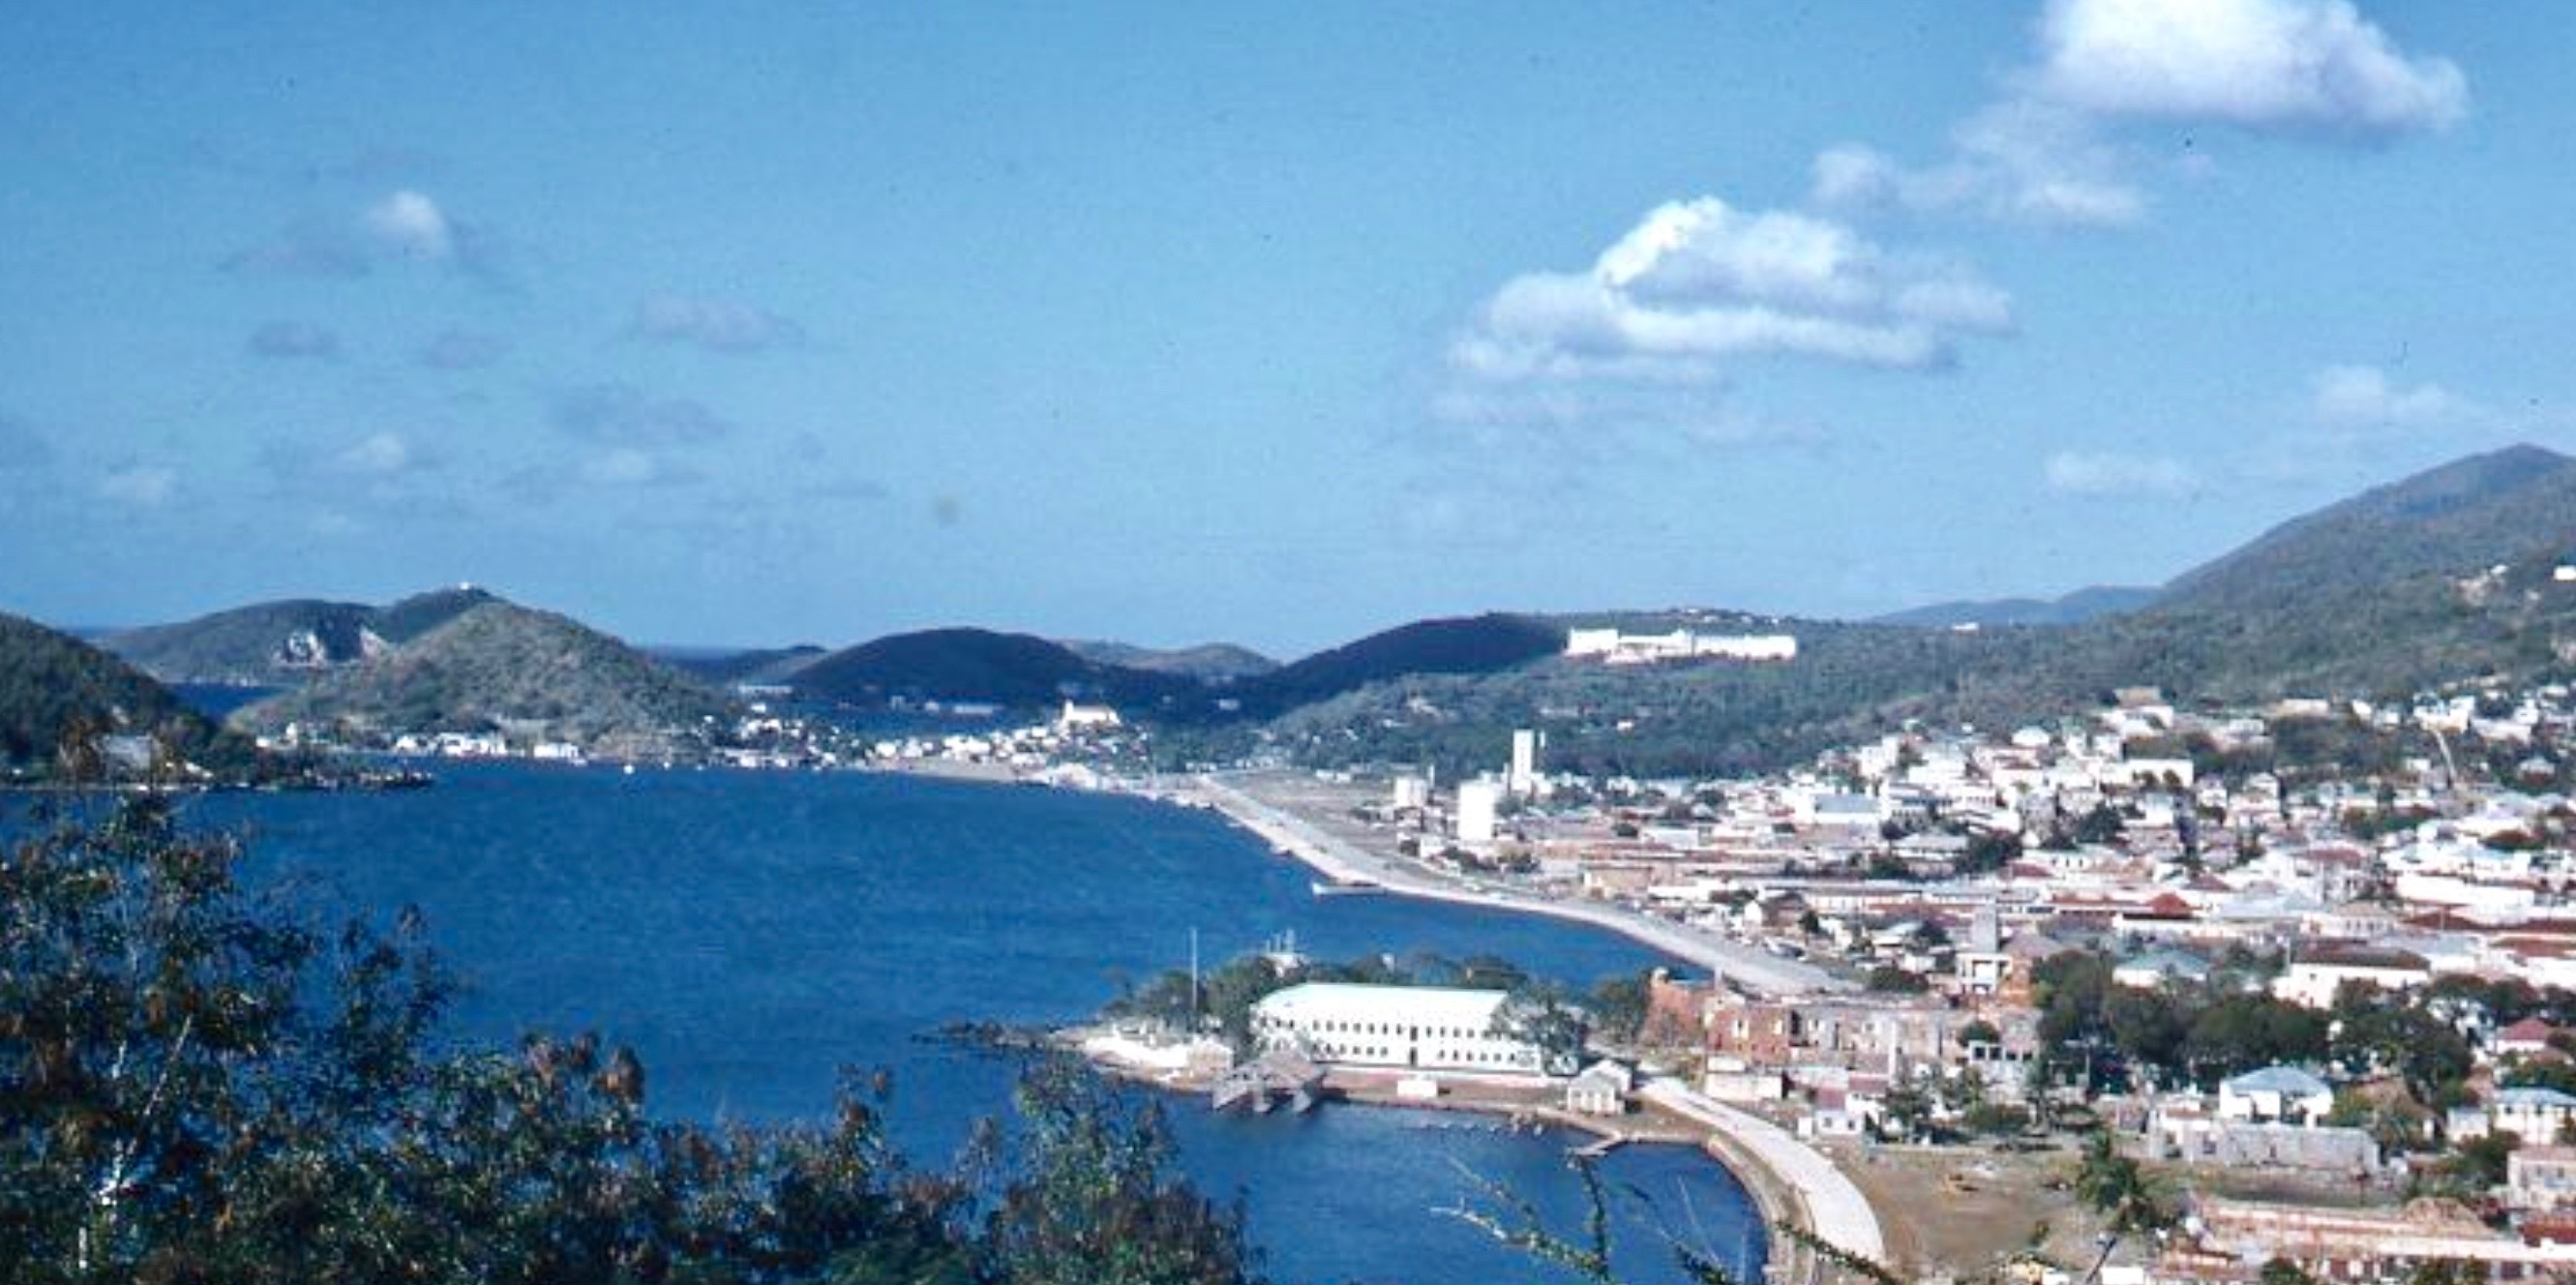 View of St. Thomas harbor